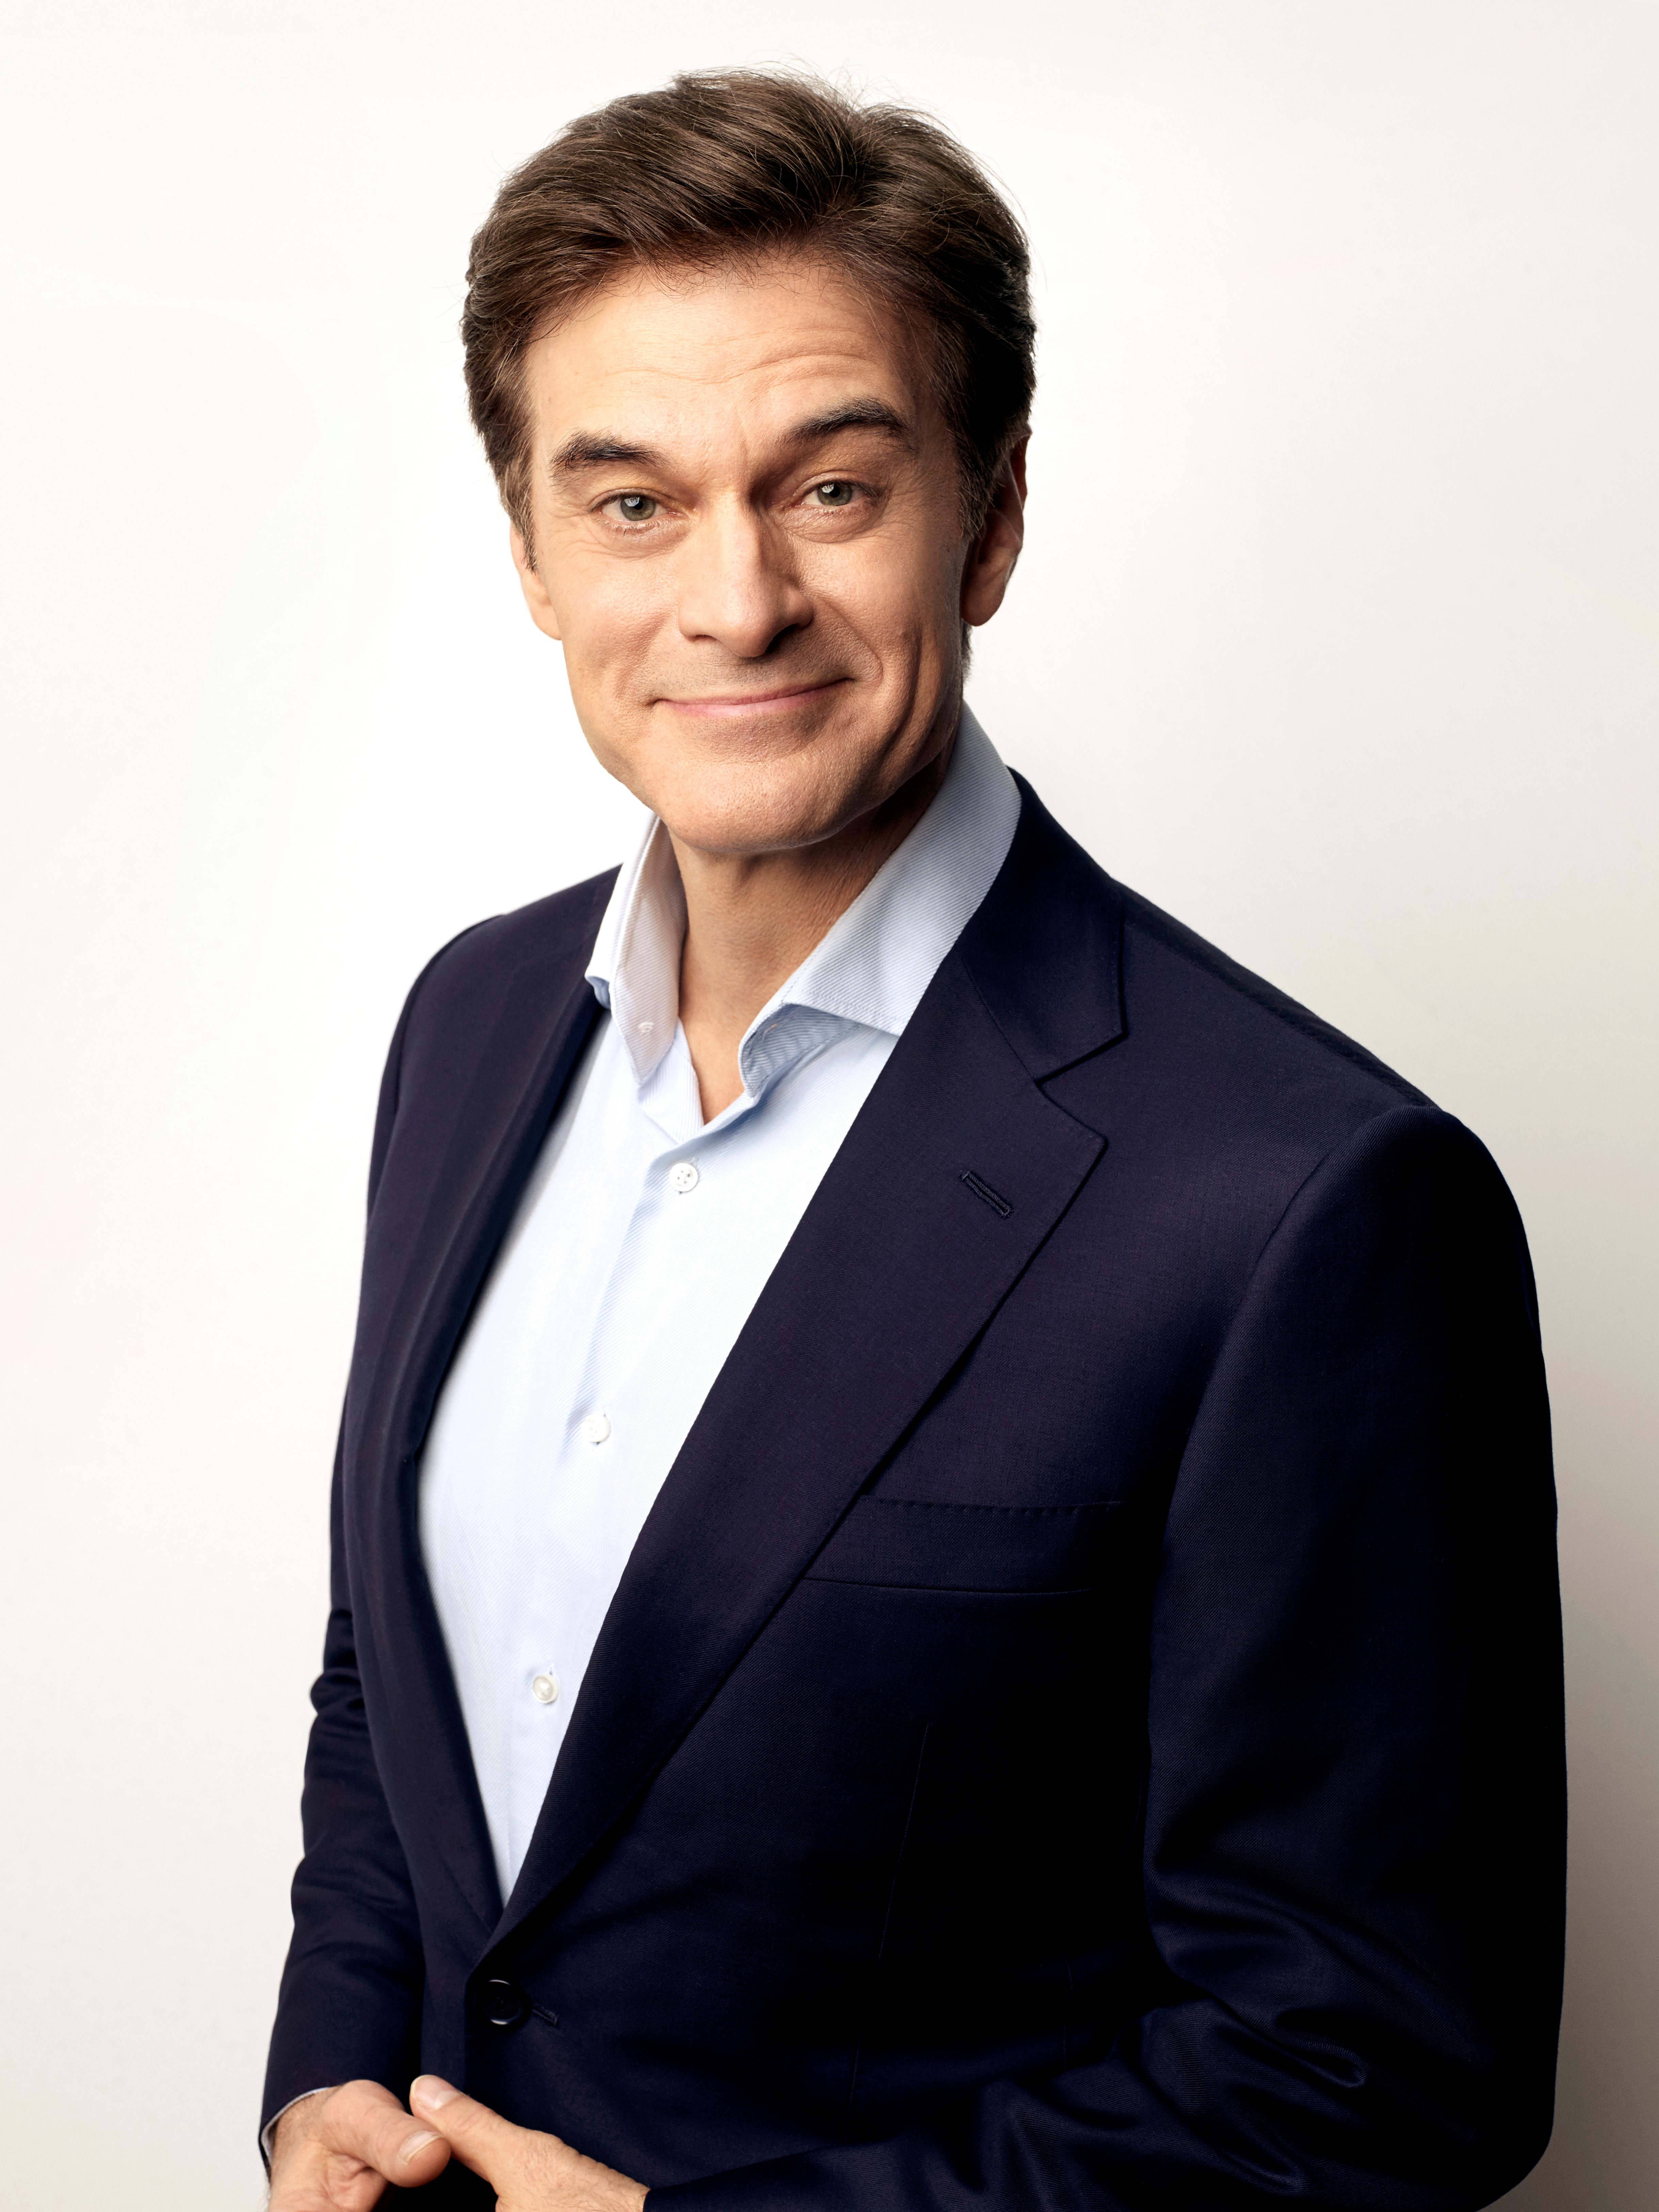 Cover image for  article: Dr. Oz: 10 Years in and Still Leading the Way to Wellness